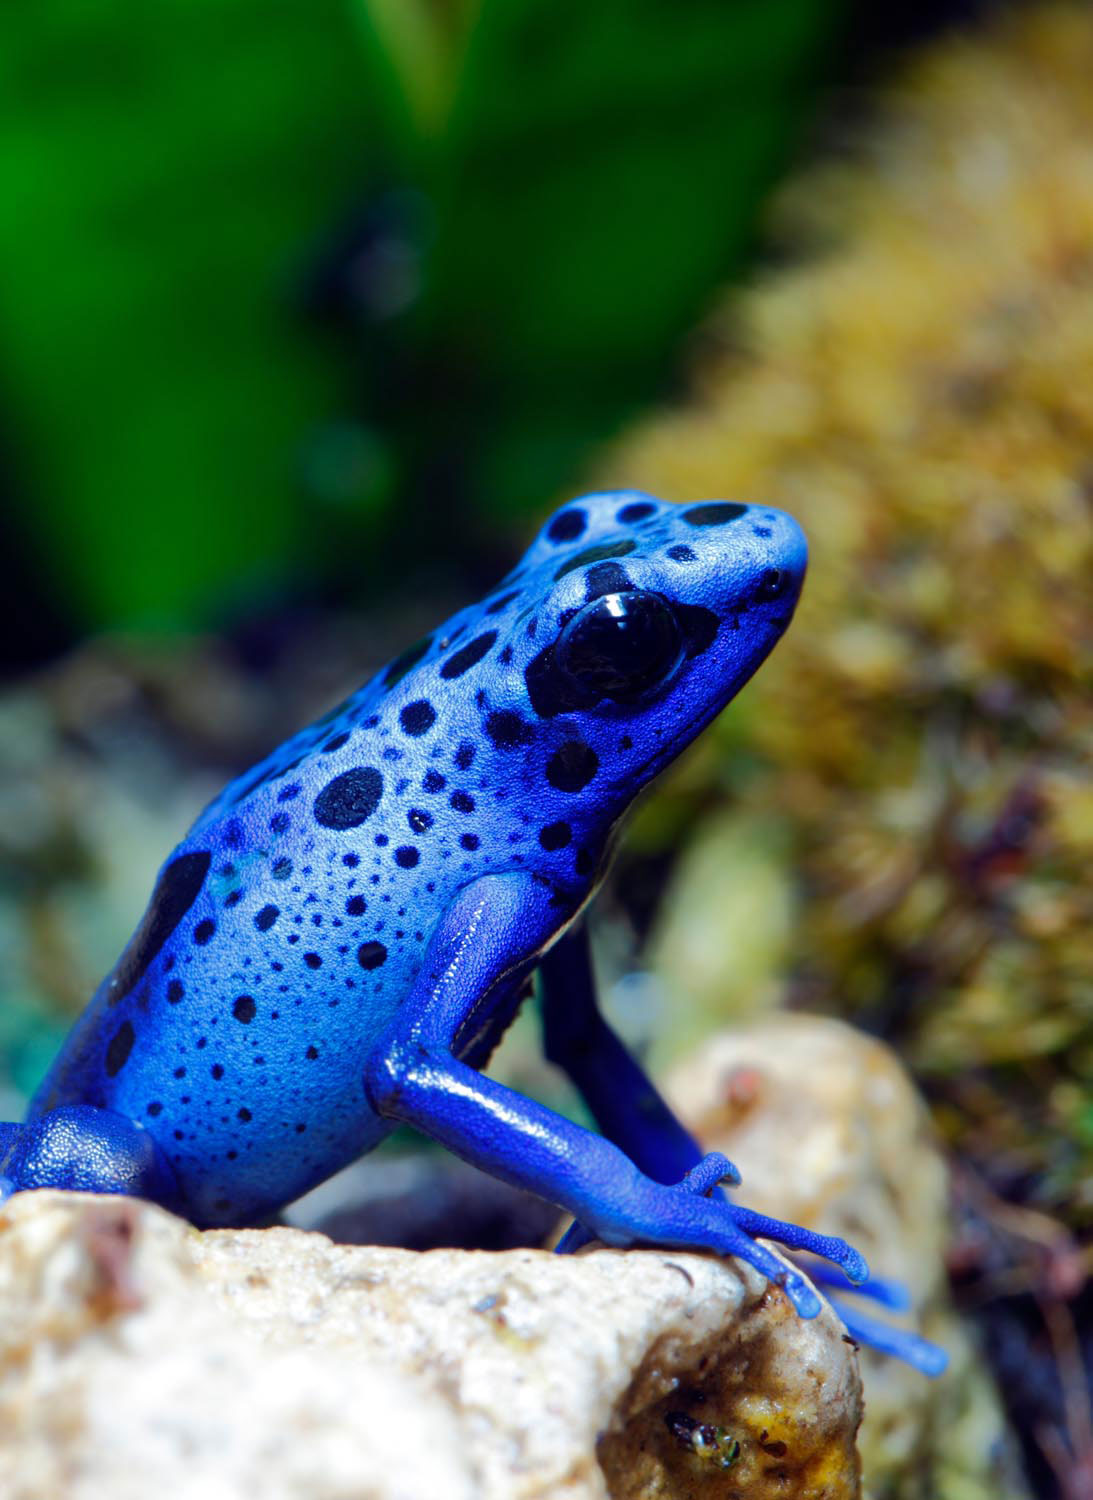 The blue poison dart frog is the most vivdly coloured inhabitant of Suriname's rainforests. Photo by ABDESIGN/iStockPhoto